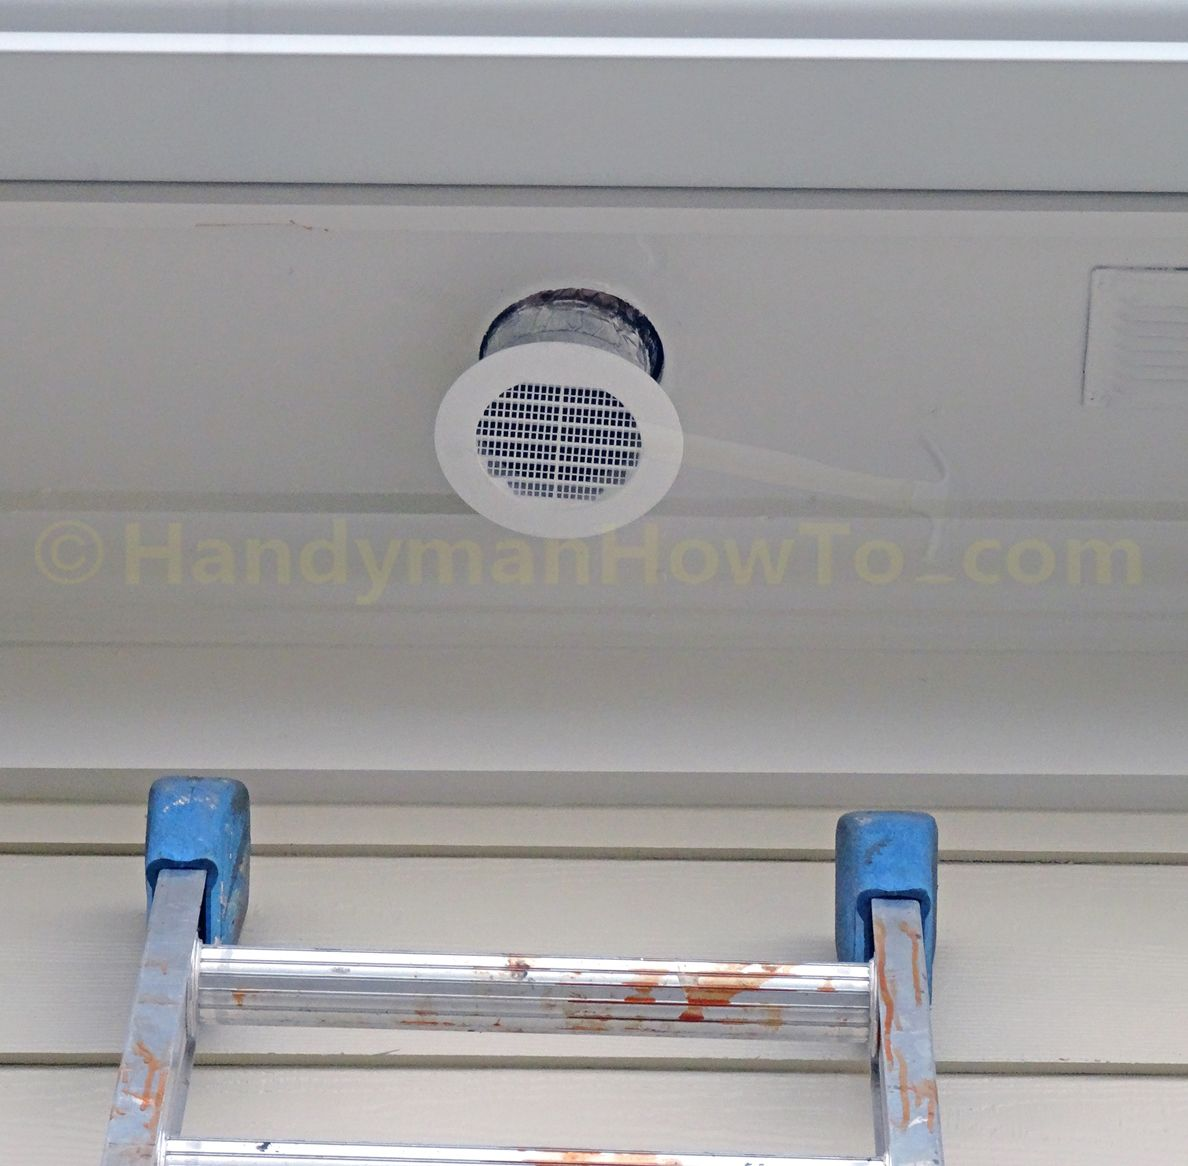 Exceptionnel How To Install A Soffit Vent And Ductwork For A Bathroom Vent Fan. Mount The